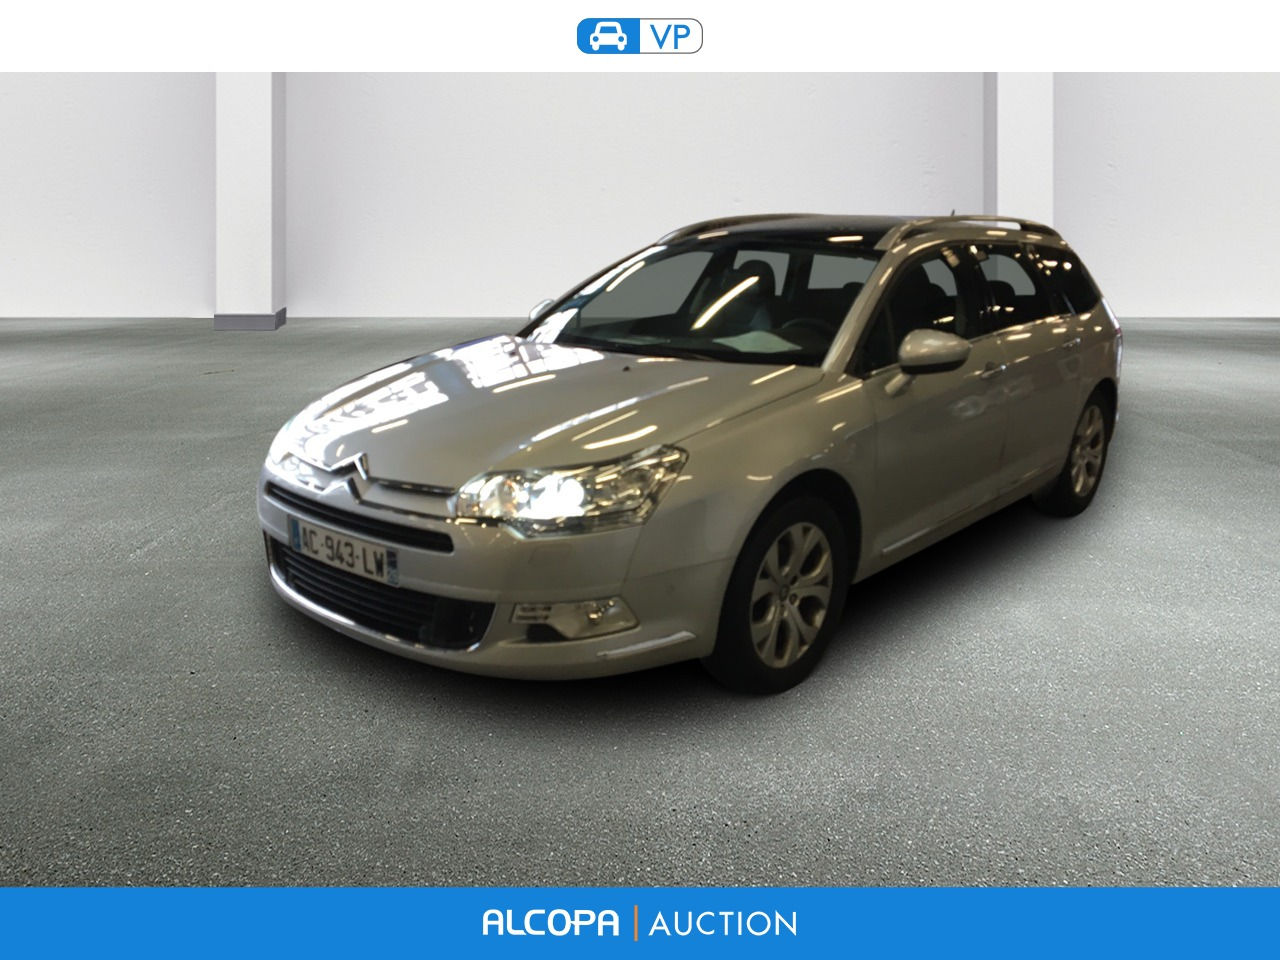 citroen c5 tourer c5 tourer hdi 140 fap exclusive alcopa auction. Black Bedroom Furniture Sets. Home Design Ideas